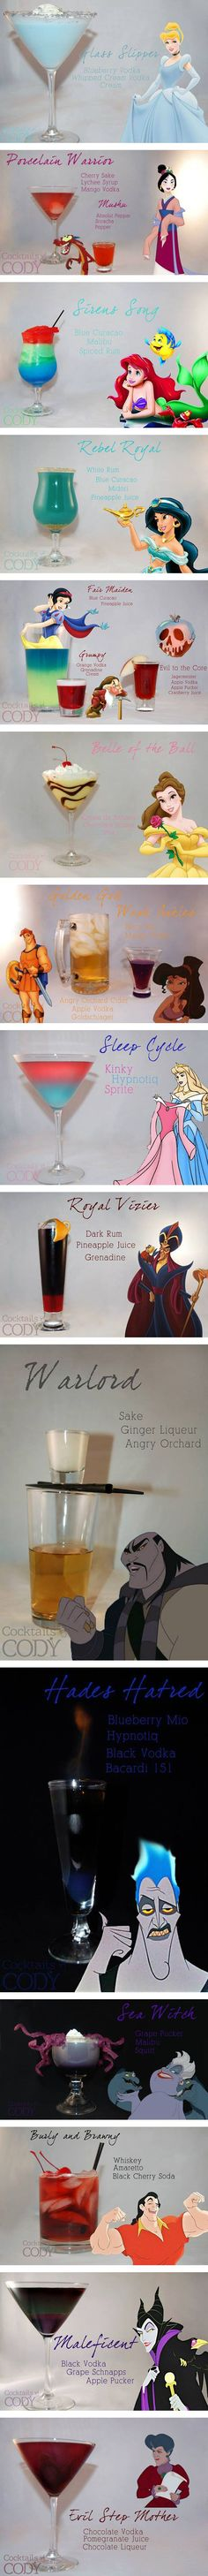 Disney Princess-Themed Cocktails, yes! Shatz Eggers Cody of Cocktails by Cody has mixed up a collection of cocktails inspired by Disney Princesses plus some Disney villains for good measure. Disney Cocktails, Cocktail Disney, Fun Cocktails, Snacks Für Party, Party Drinks, Cocktail Drinks, Cocktail Recipes, Party Recipes, Comida Disney